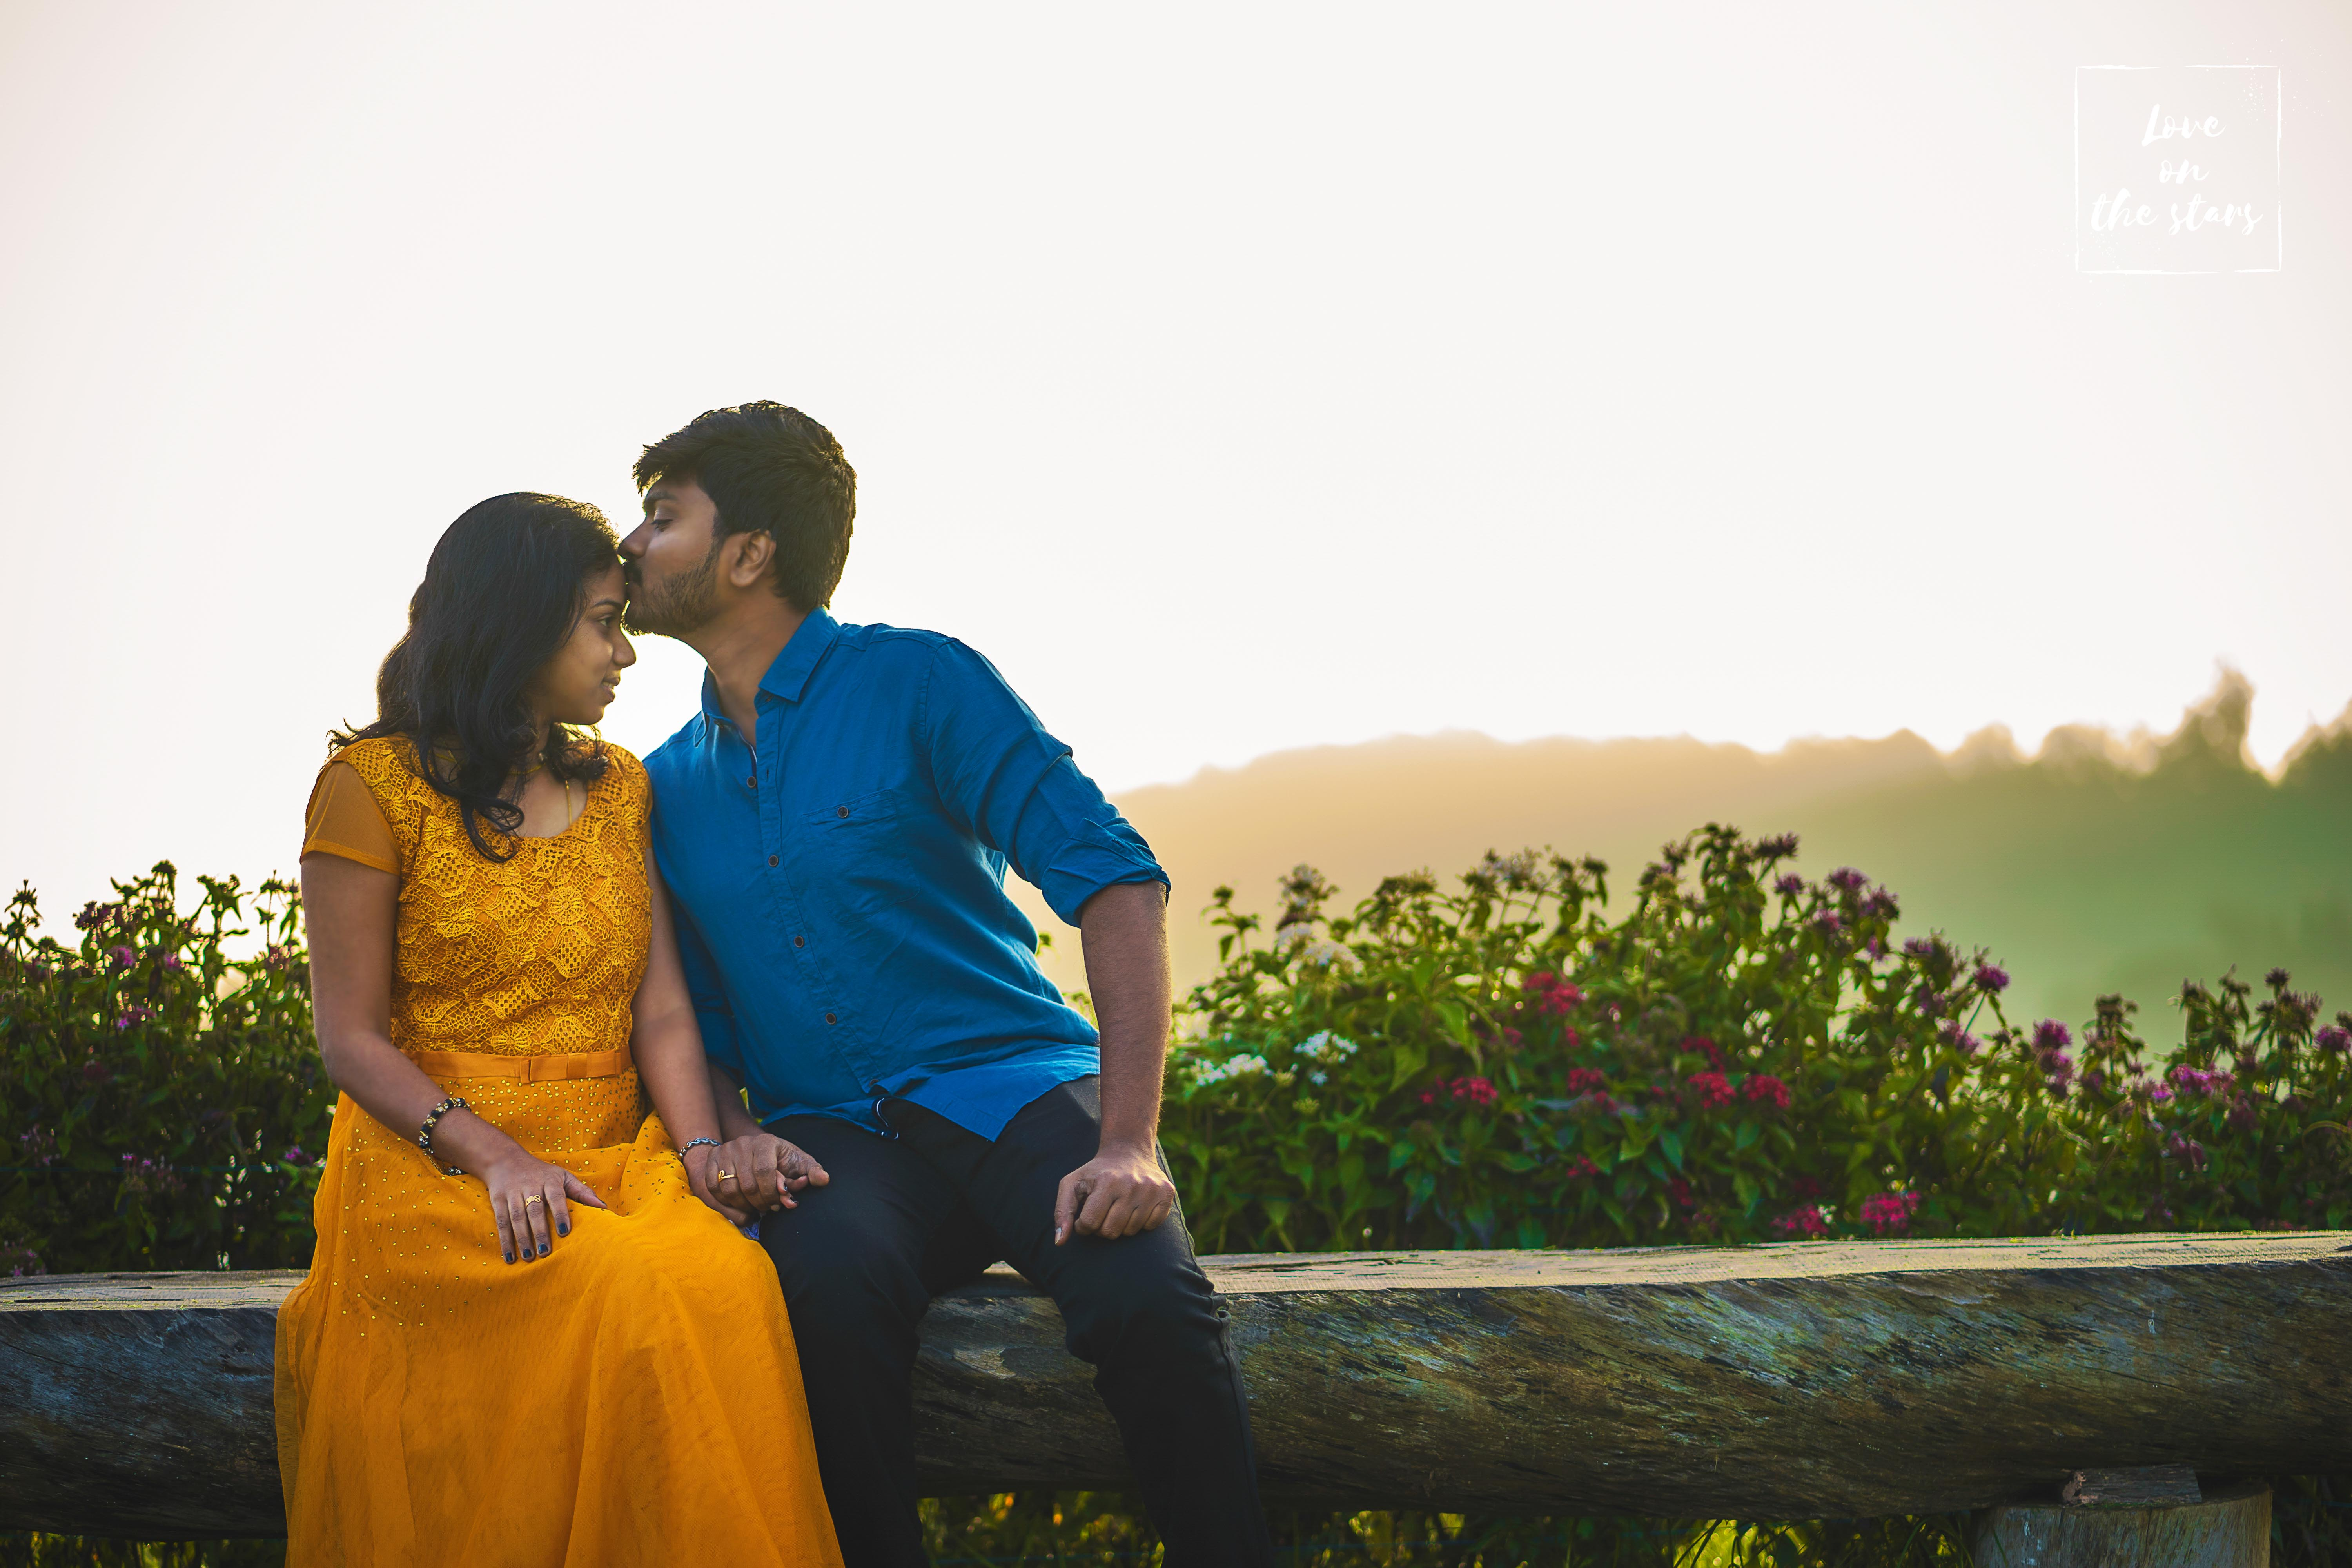 Sumesh & Pradeepa - Outdoor Shoot